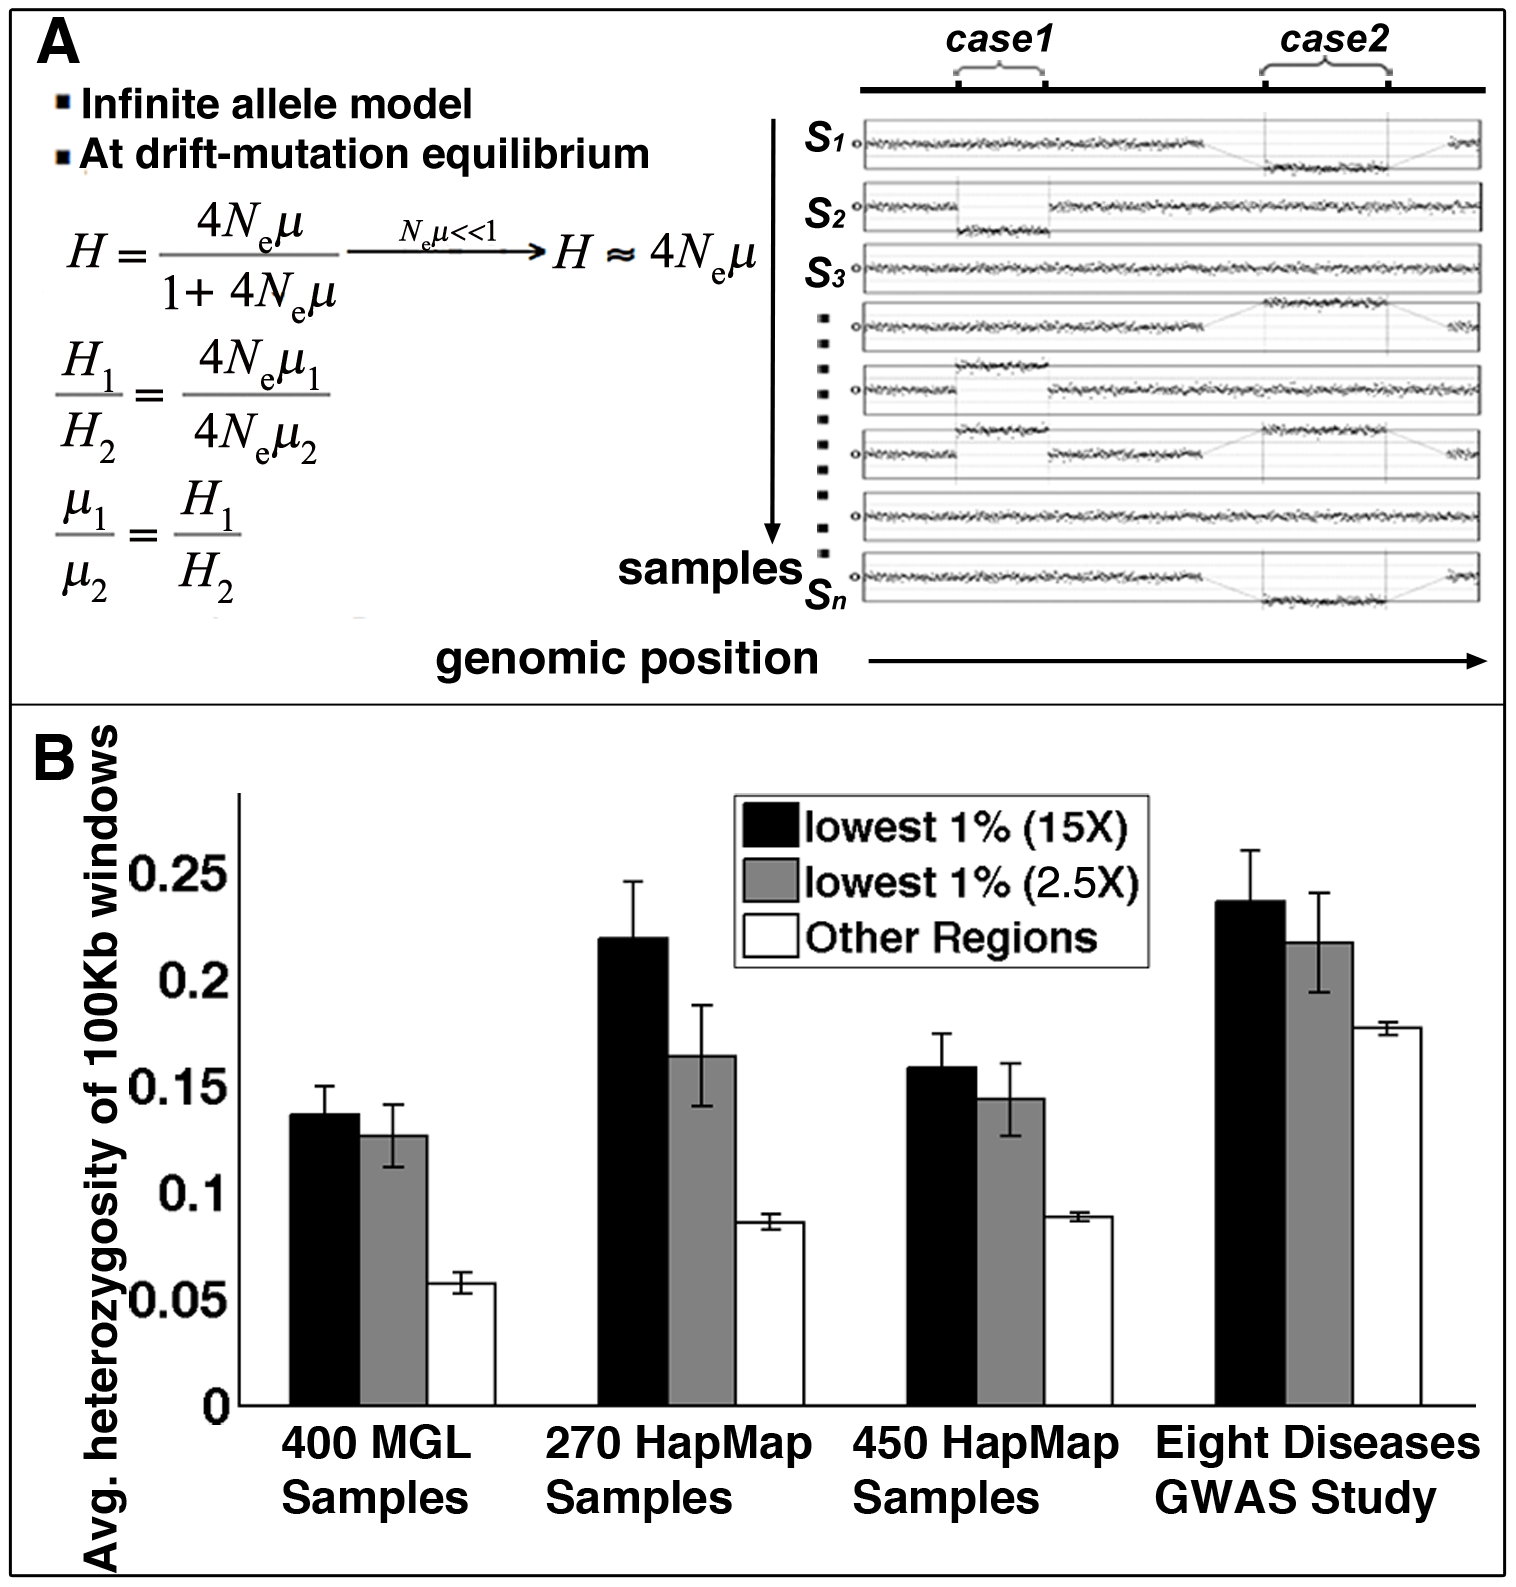 Structural mutability assessed by structural heterozygosity.